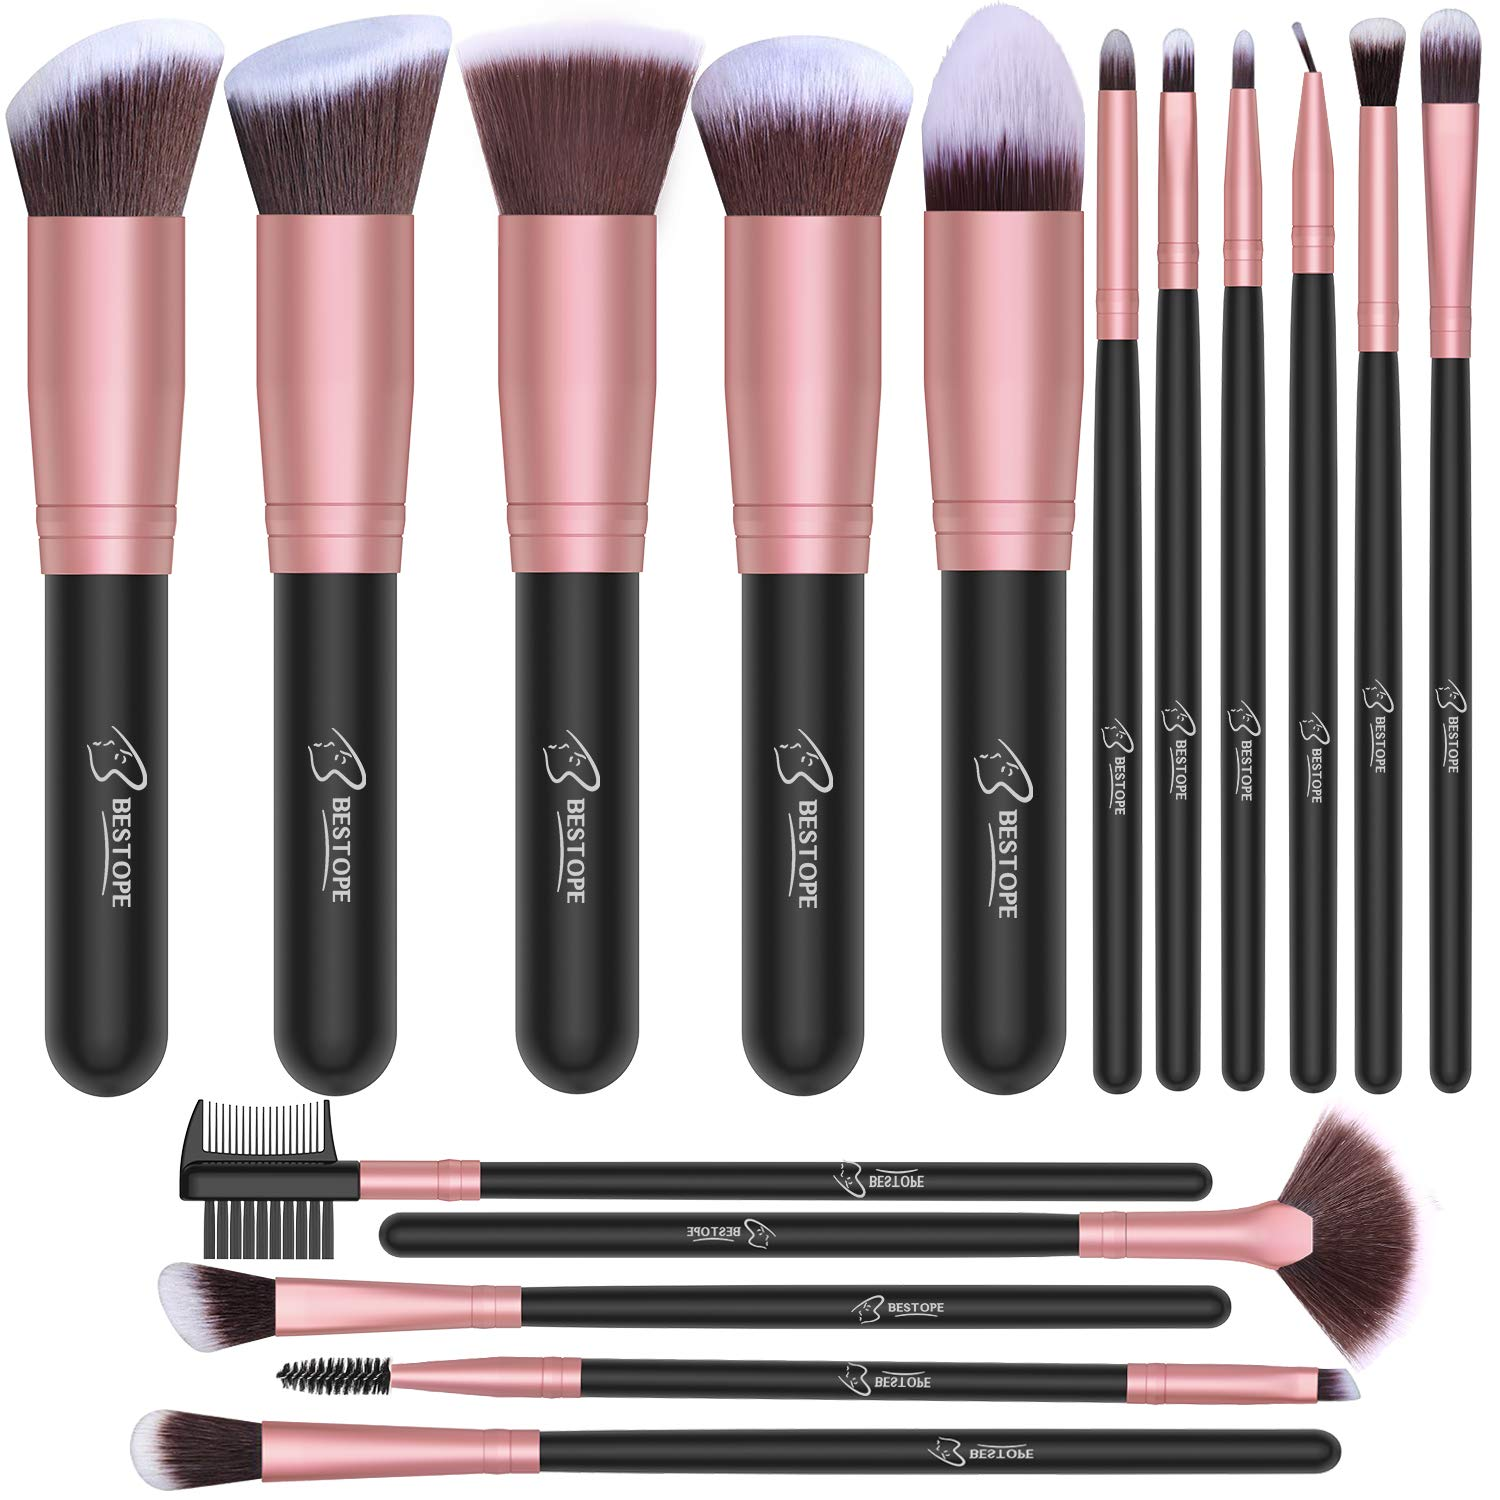 BESTOPE Makeup Brushes 16 PCs Makeup Brush Set Premium Synthetic Foundation Brush Blending Face Powder Blush Concealers Eye Shadows Make Up Brushes Kit (Rose Golden): Beauty